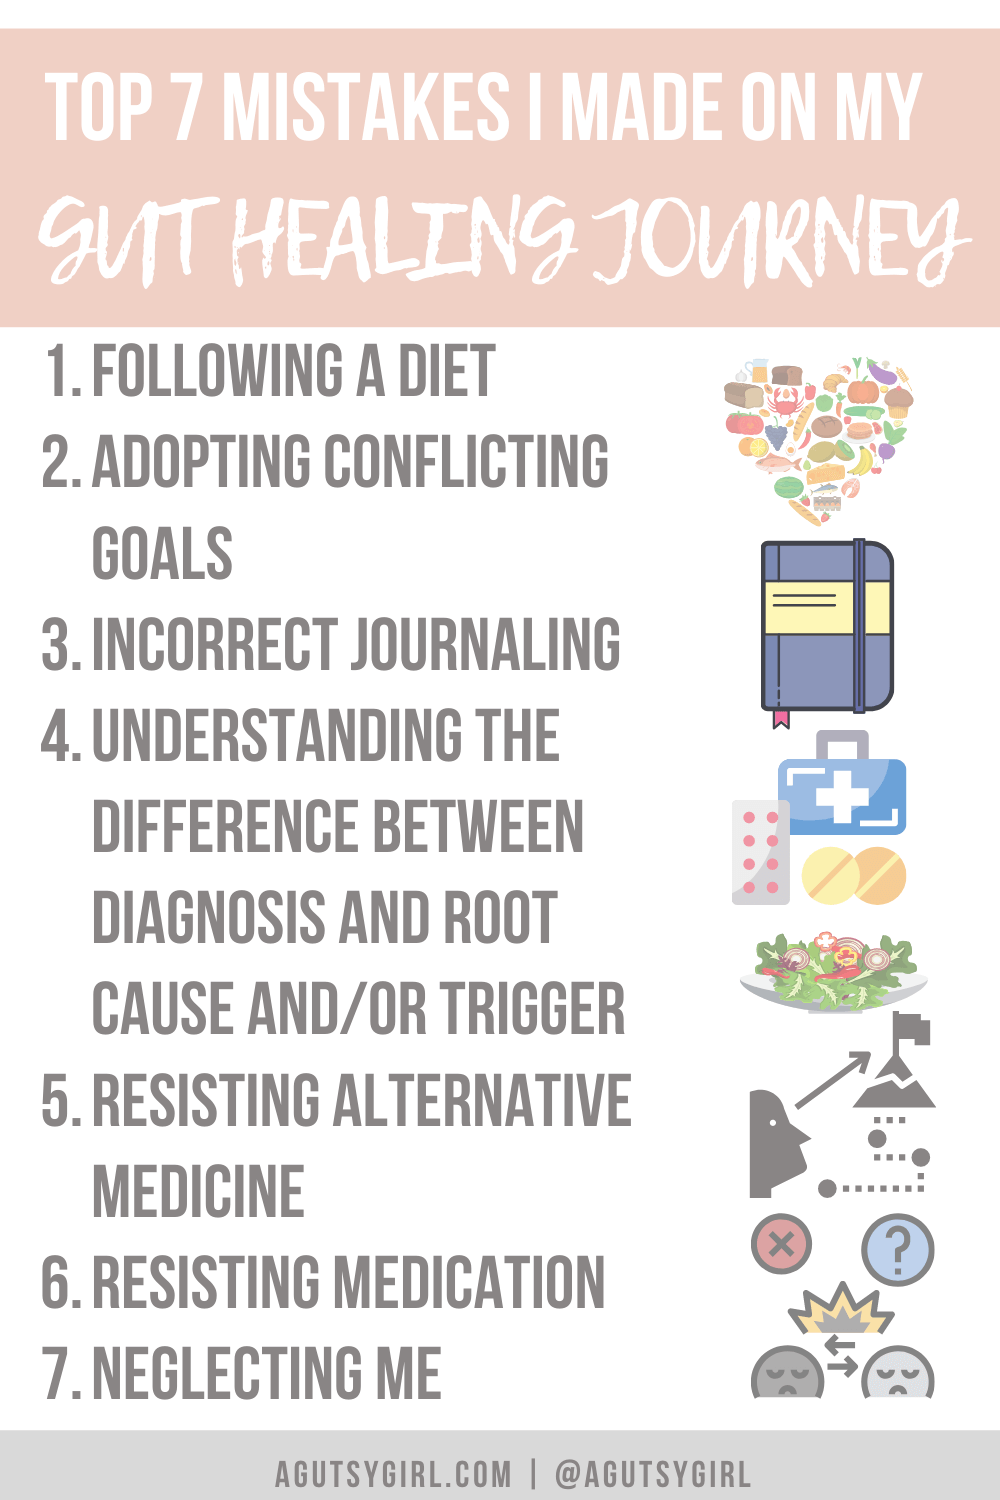 Top 7 Mistakes I Made on My Gut Healing Journey agutsygirl.com #guthealth #guthealing #ibs